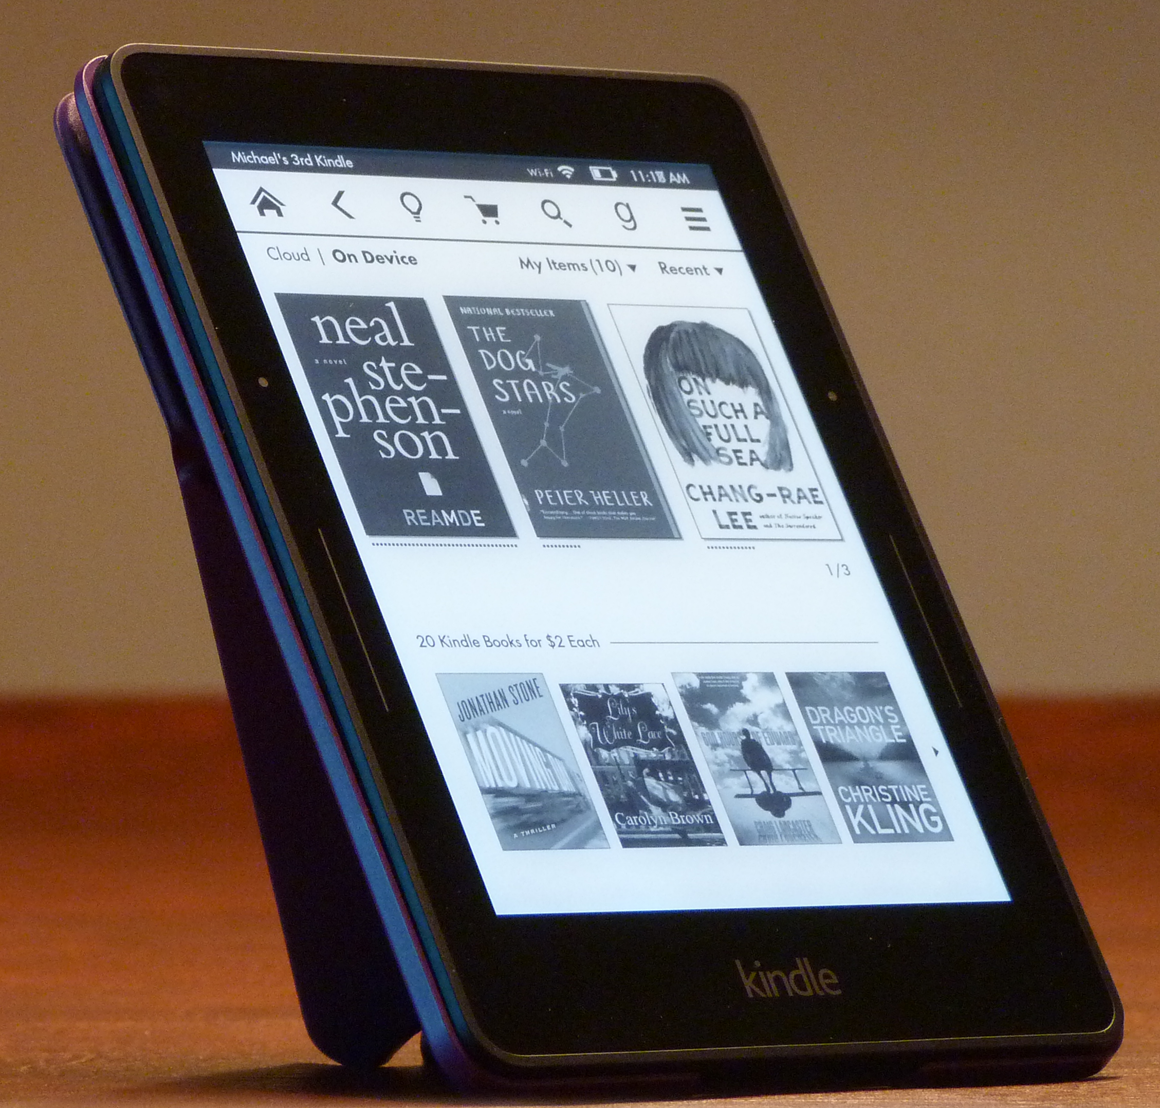 lighting up kindle Get a new kindle e-book reader here's how to set it up the right way so you're reading in no time.